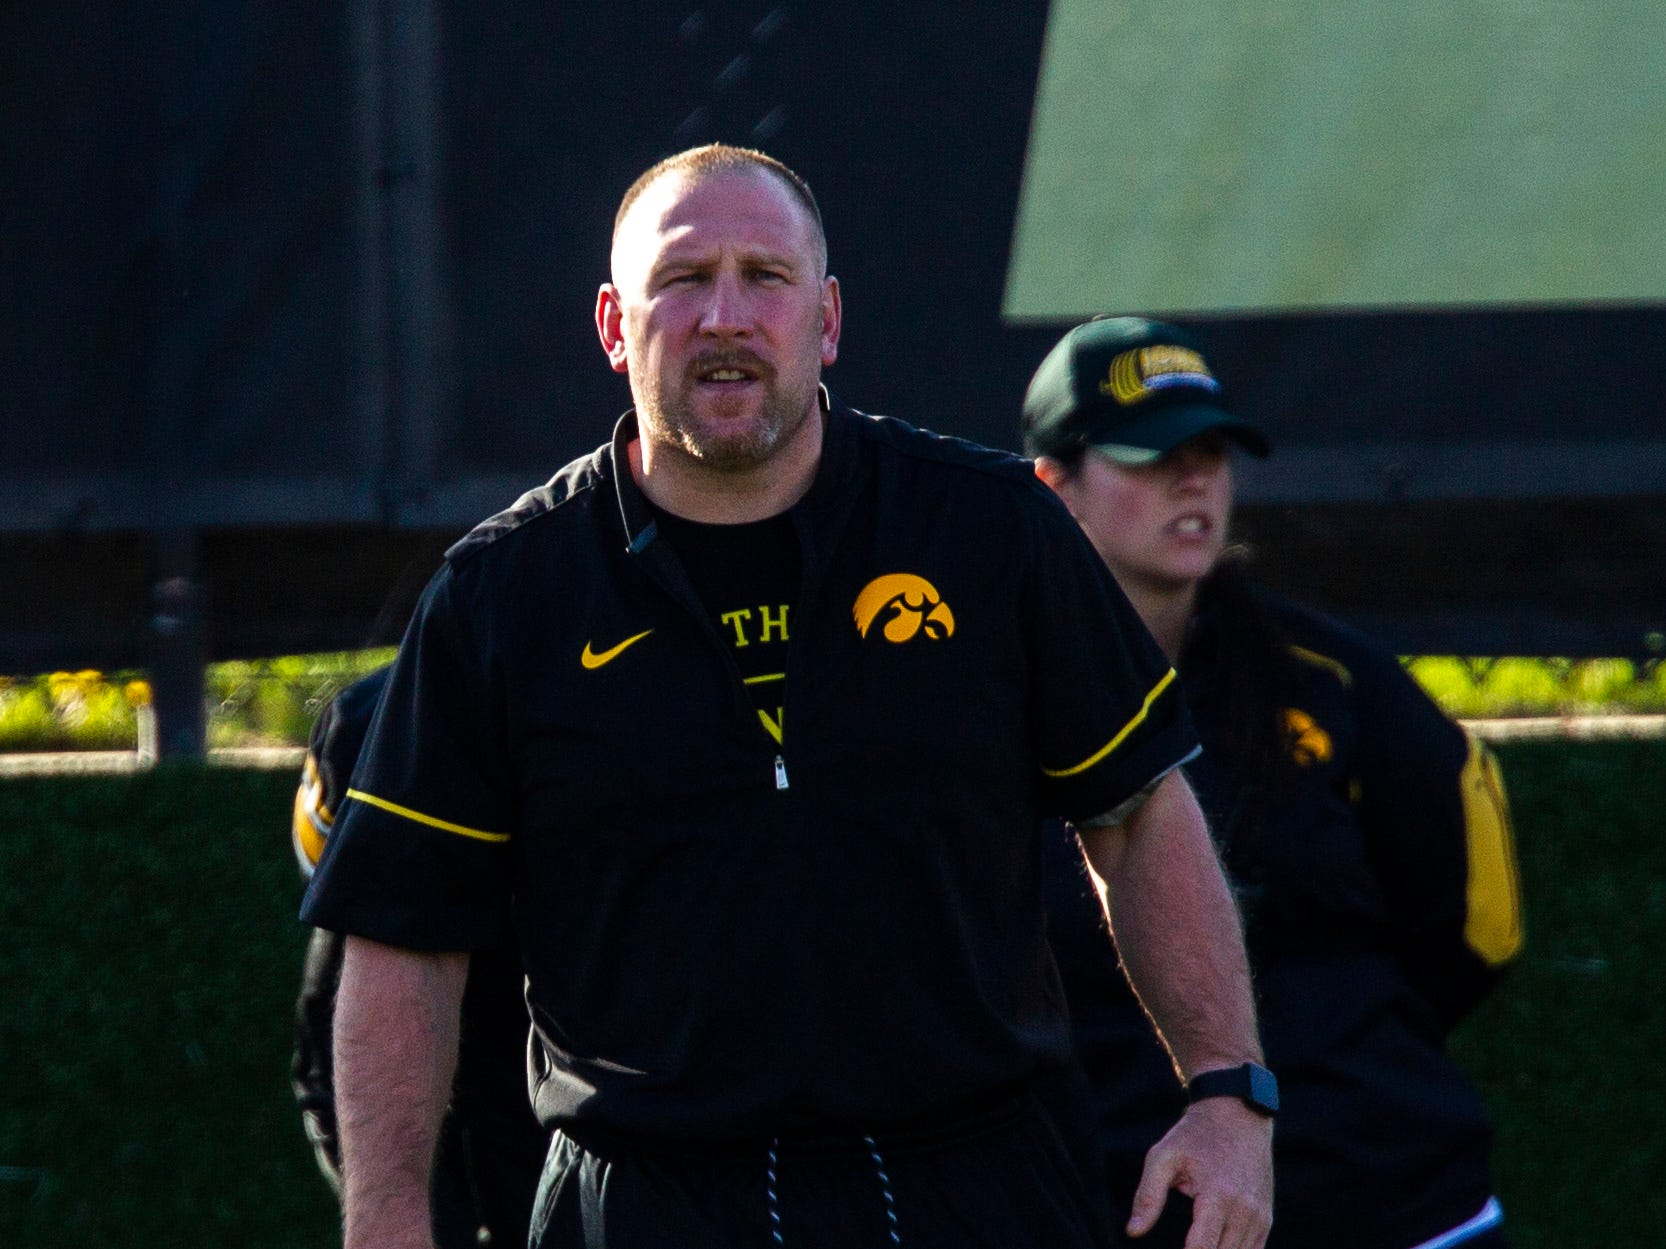 Iowa offensive line coach Tim Polasek calls out to players during the final spring football practice, Friday, April 26, 2019, at the University of Iowa outdoor practice facility in Iowa City, Iowa.